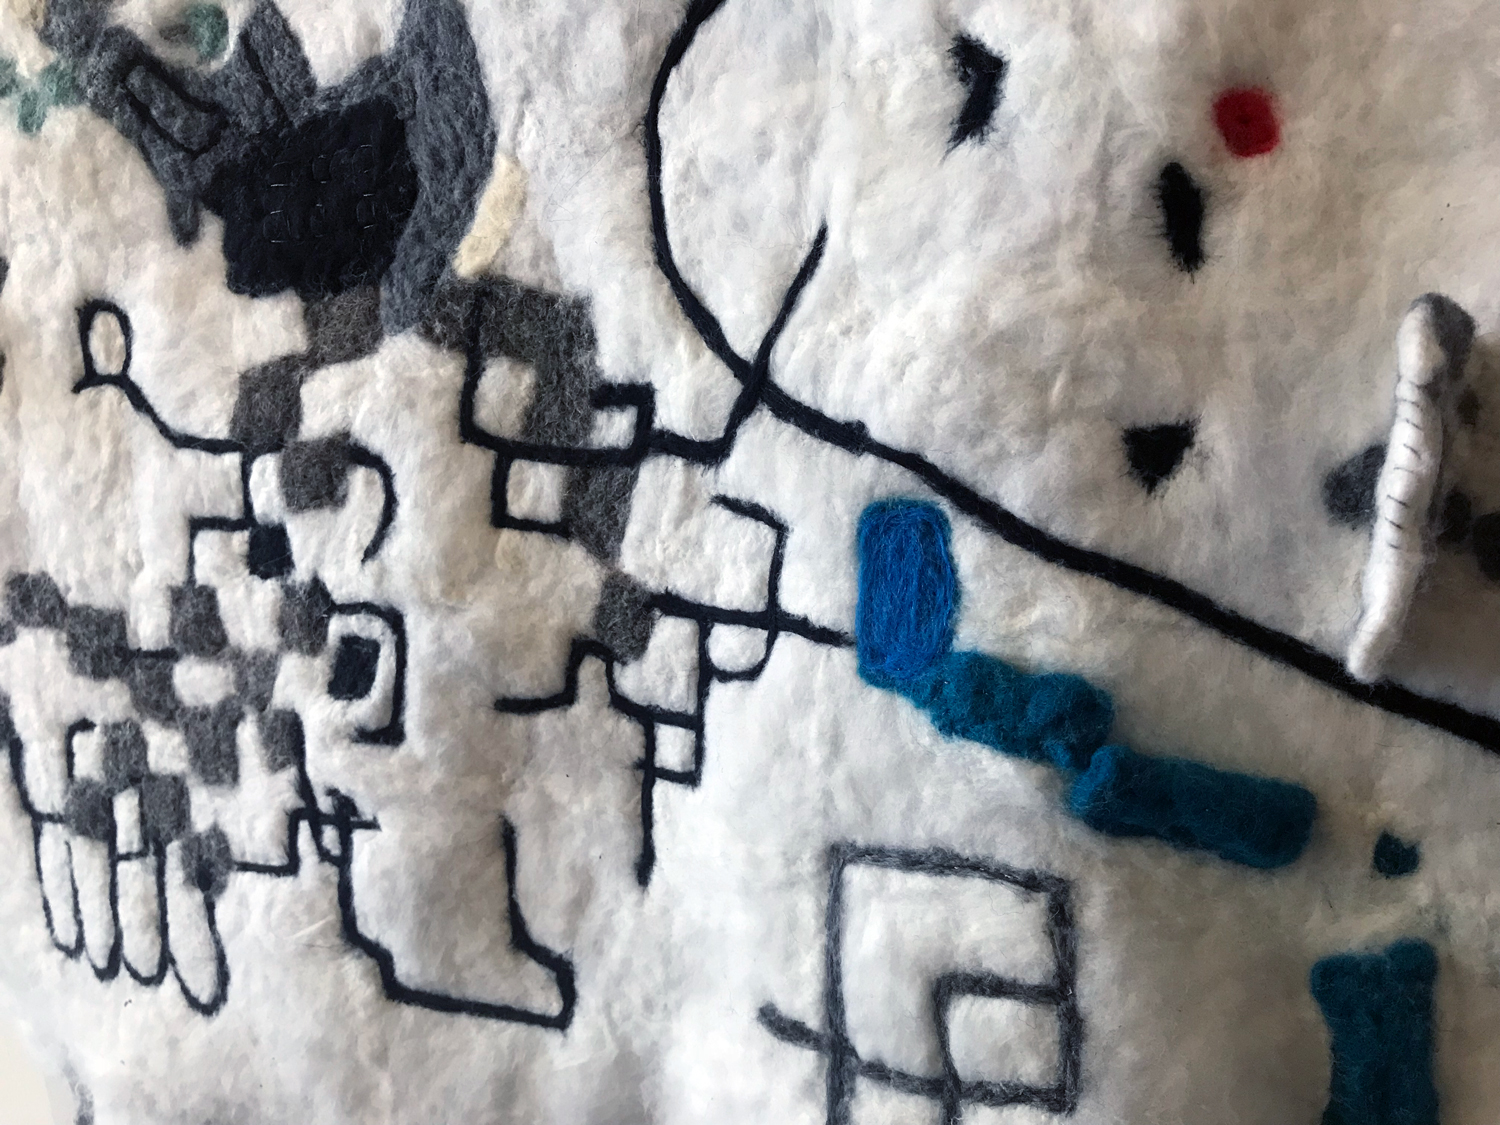 Tina Douglas fuzzy logic 2018, hand felted wool, stainless steel fibre, micro controllers, speakers, sound, painted ply, 91 x 91 cm, detail.